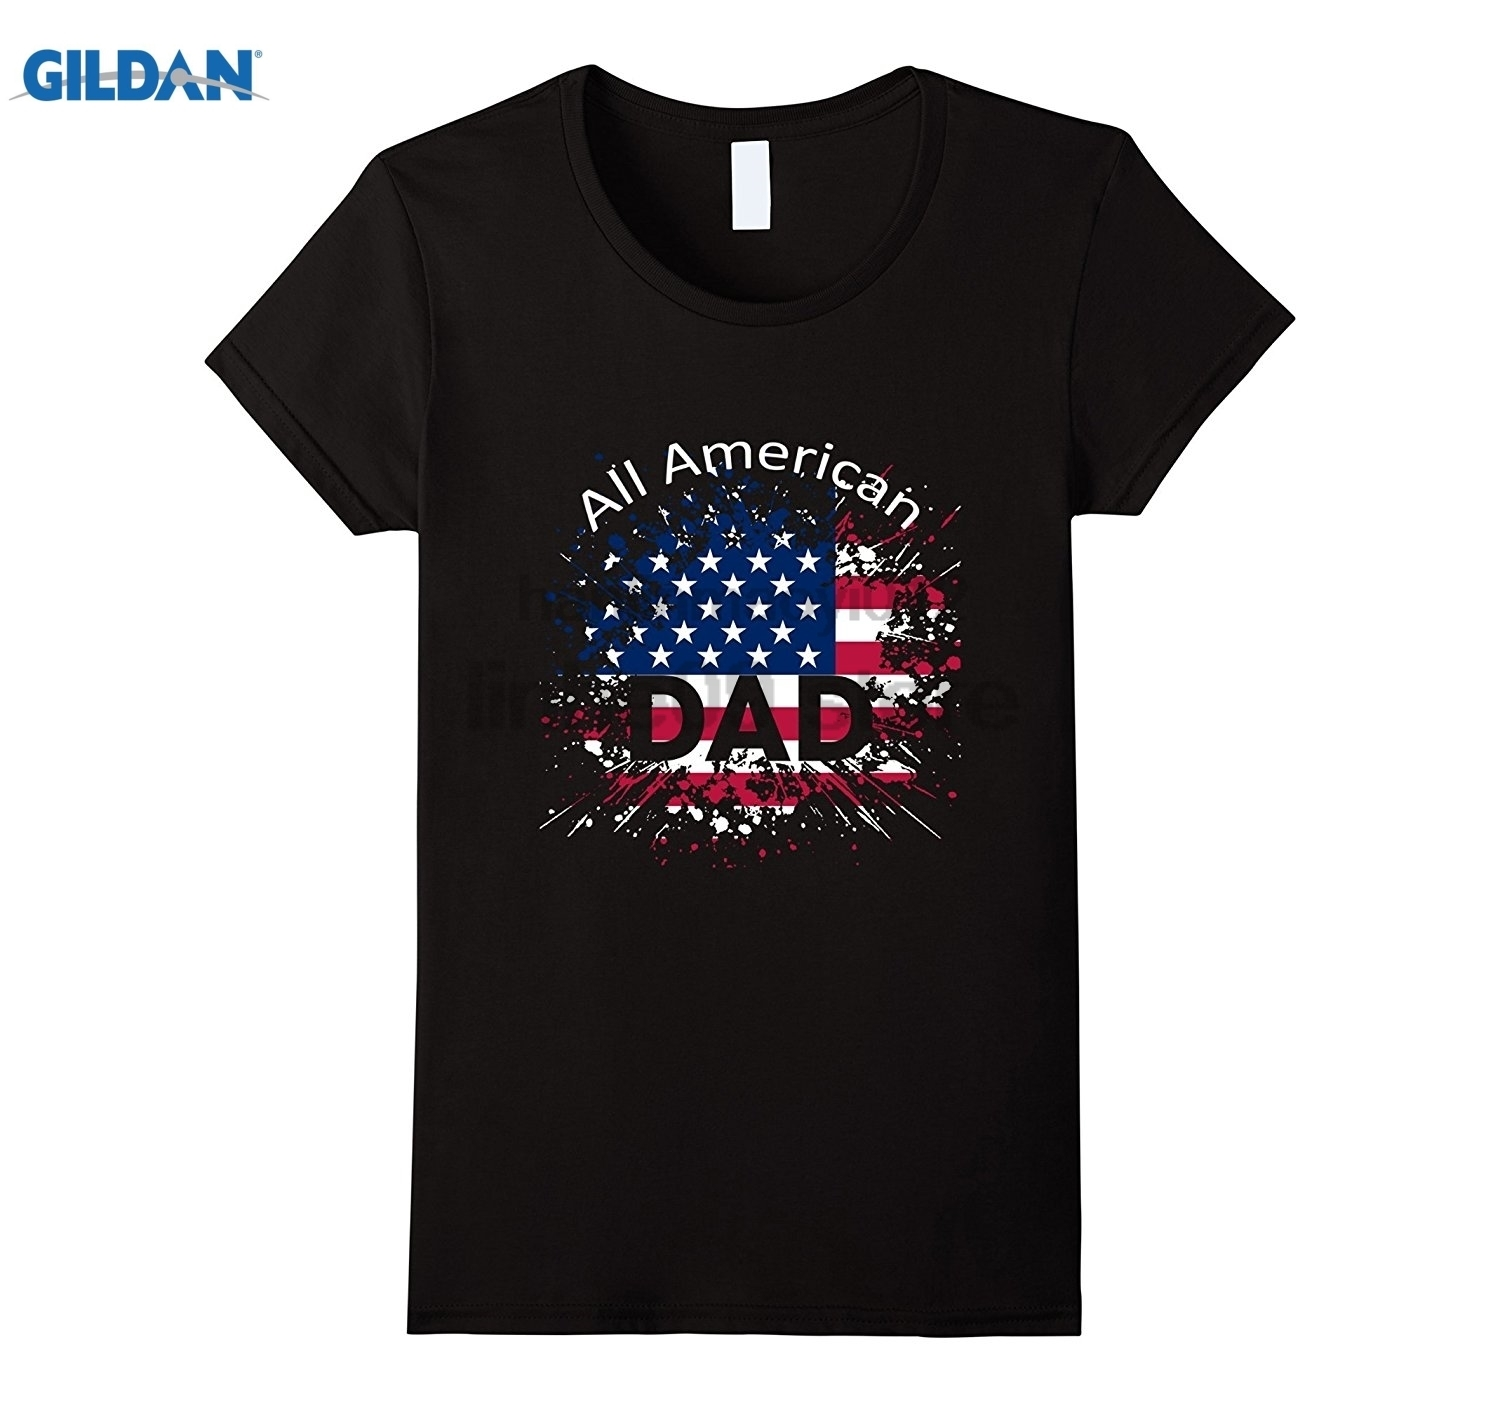 GILDAN Mens All American Dad American Flag - Fathers Day Gift Shi Womens T-shirt